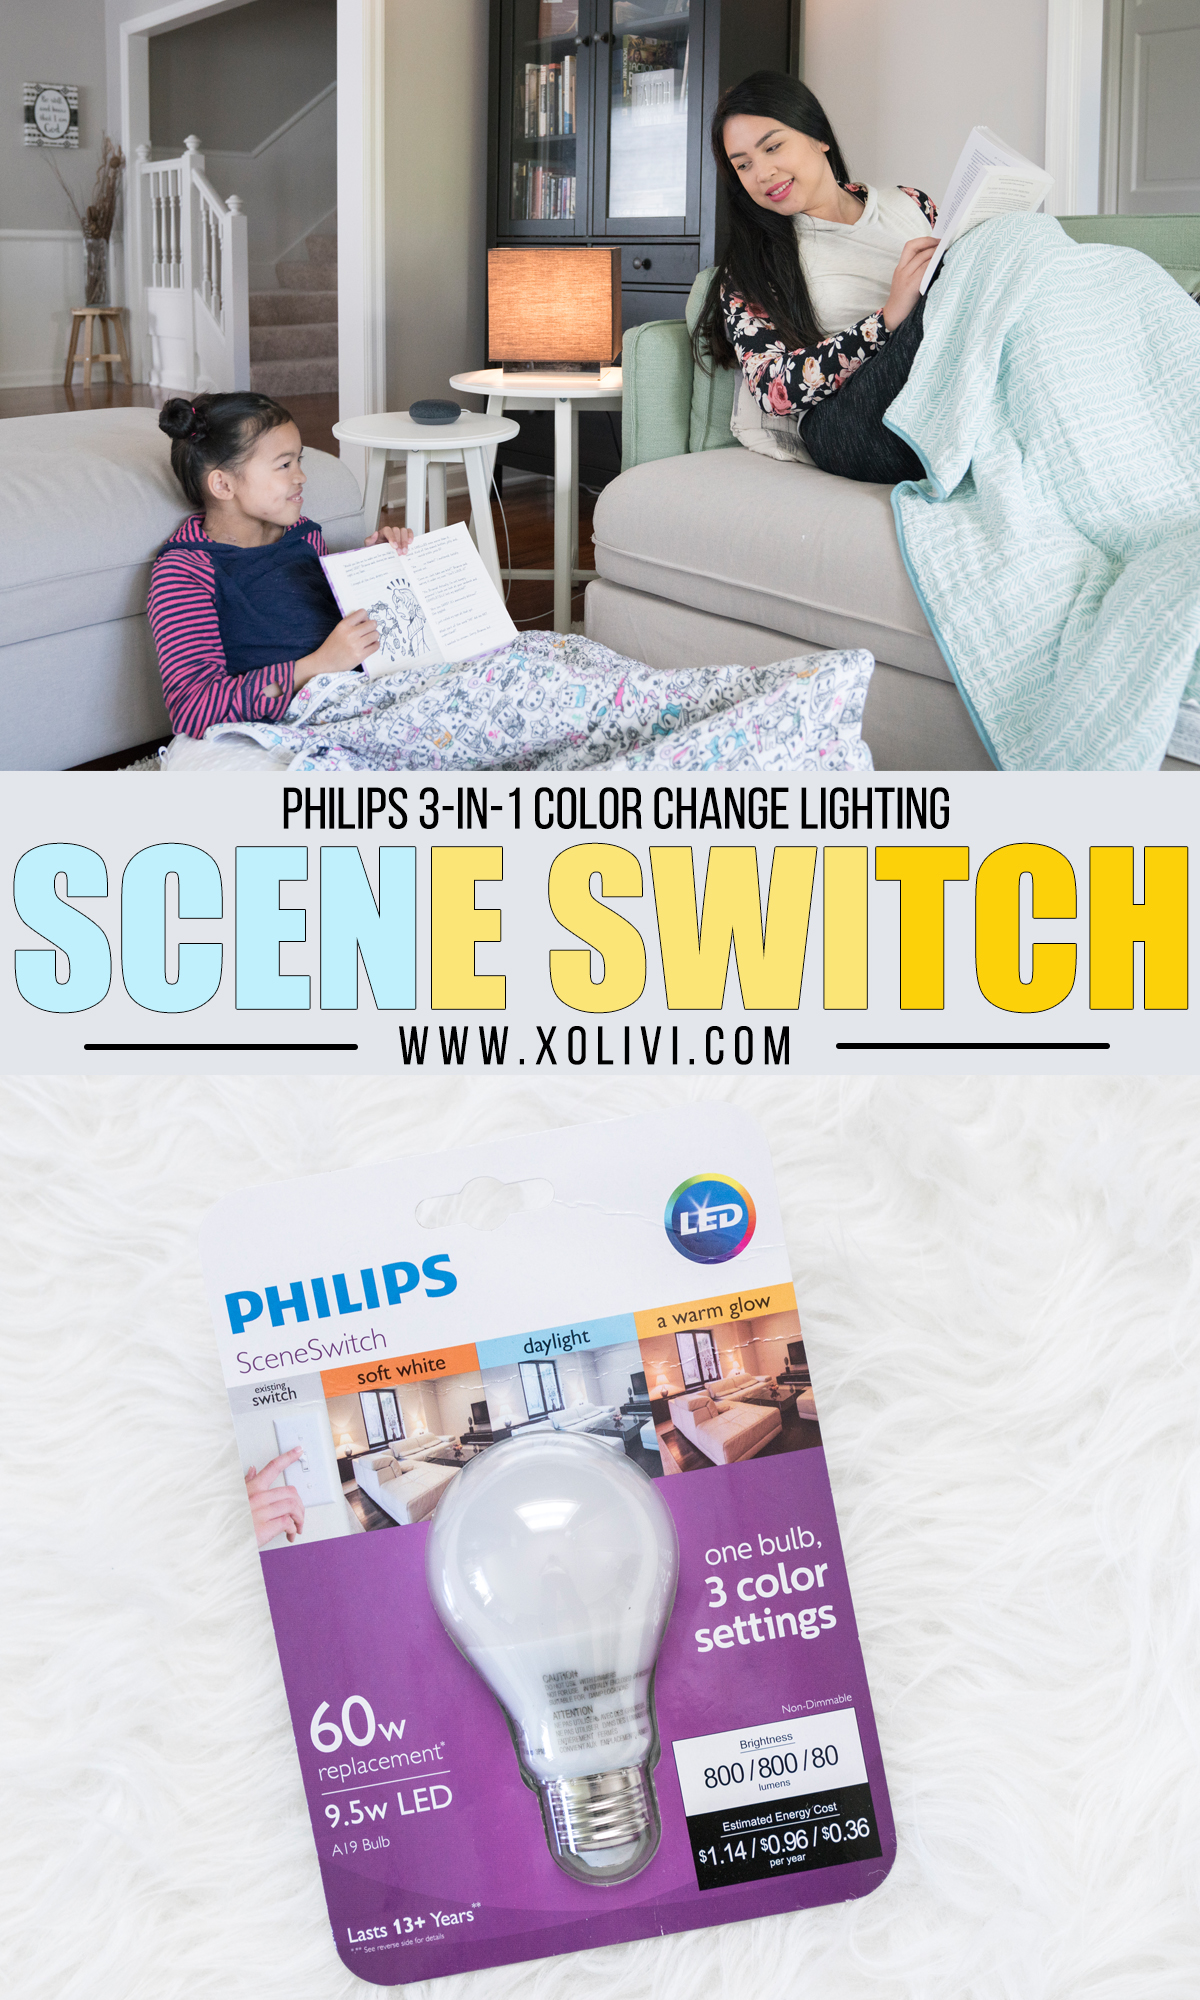 Philips sceneswitch 3 in 1 light bulb